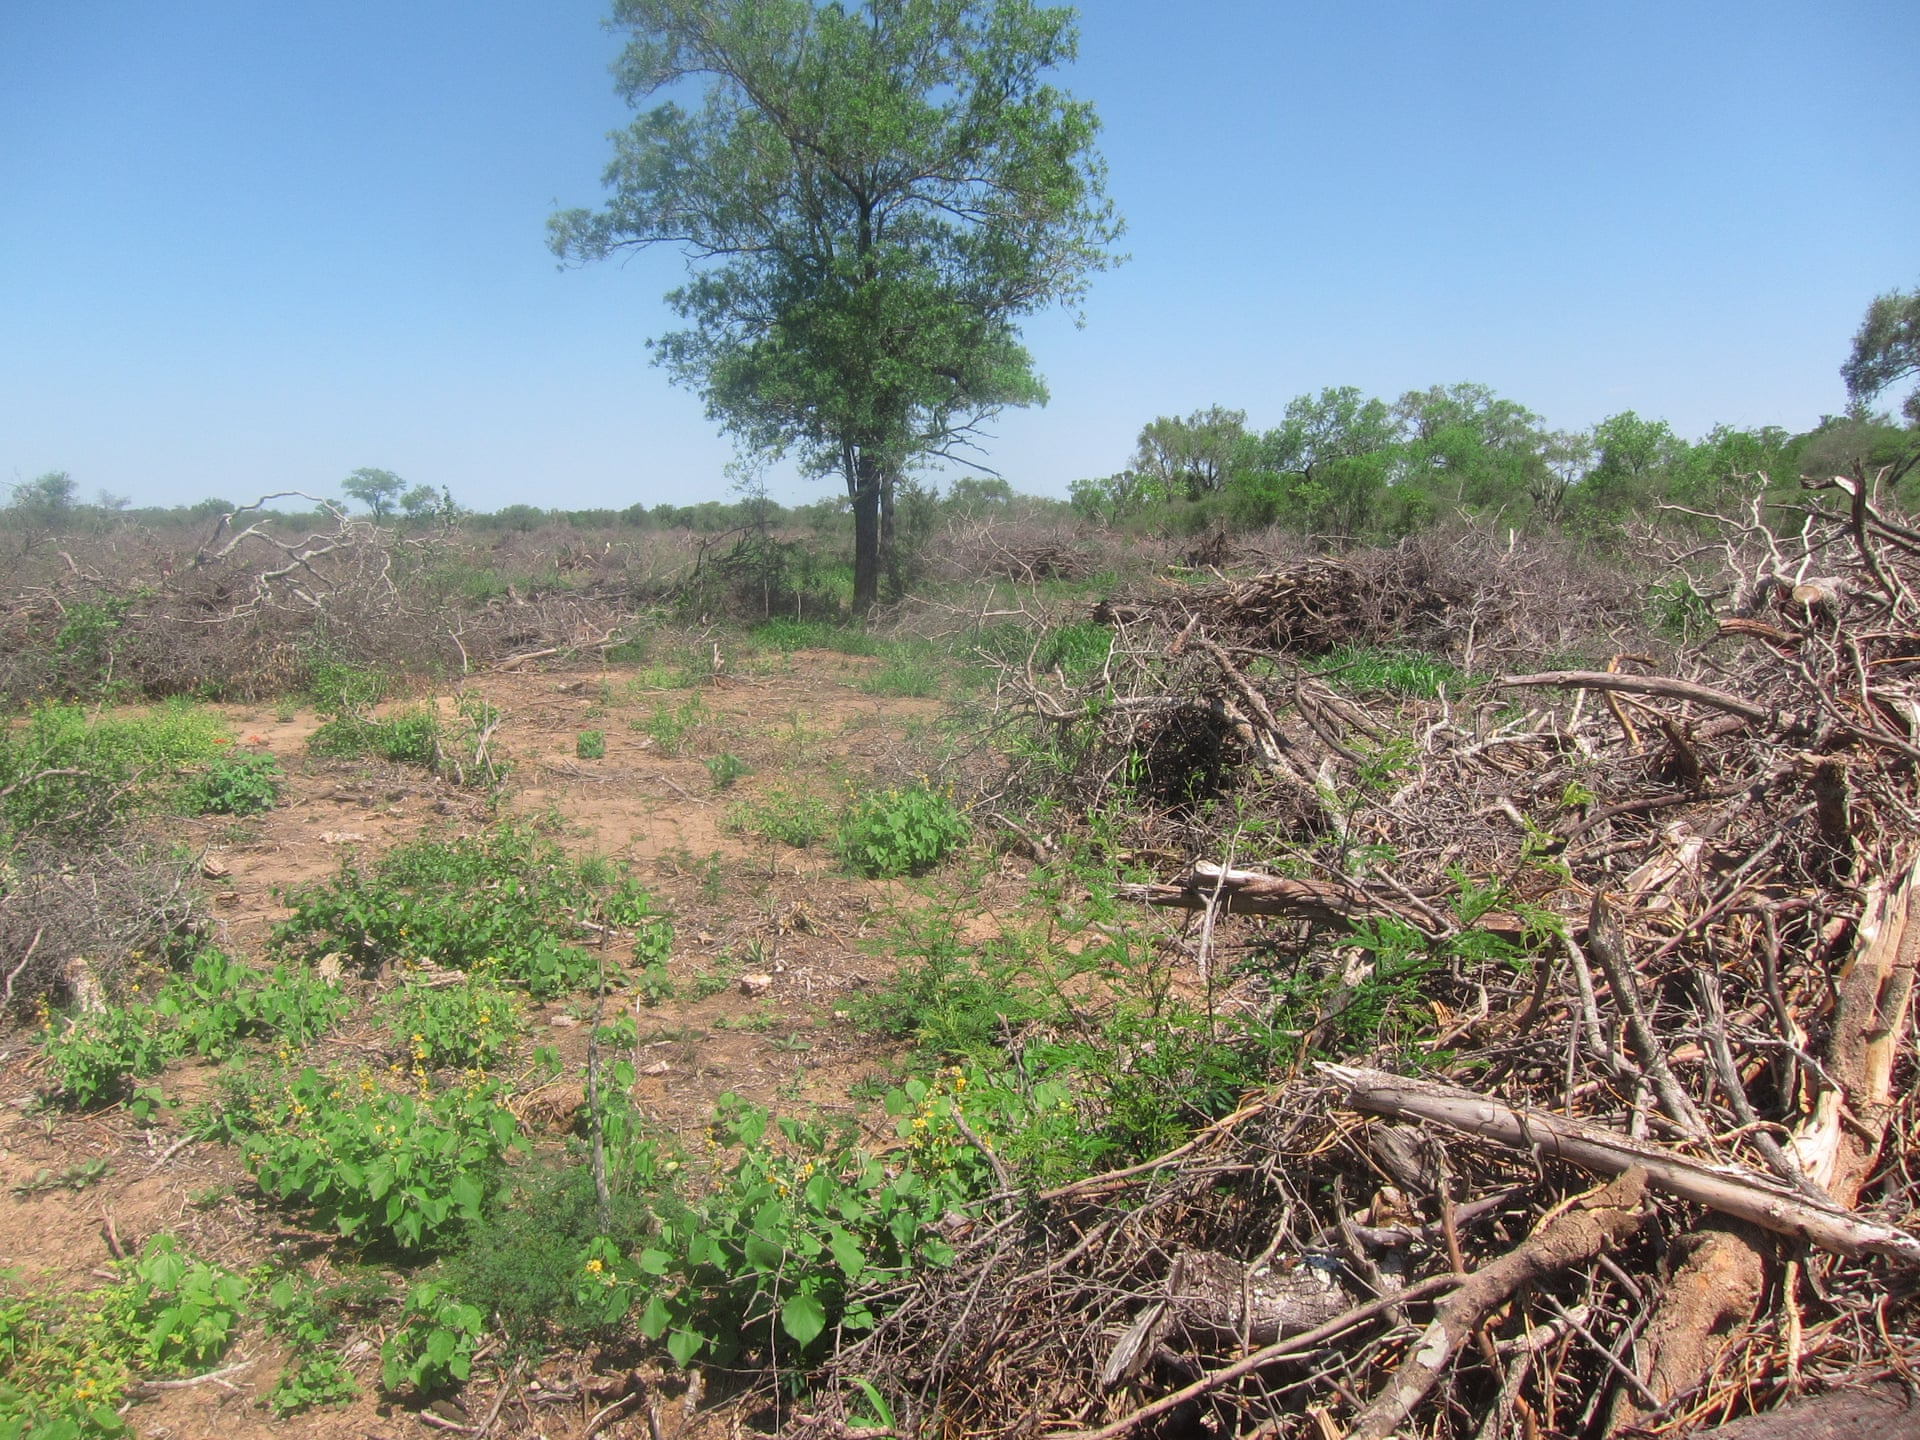 Cleared land adjacent to Bricapar's charcoal facility in Paraguay's Chaco region. Photograph: Earthsight